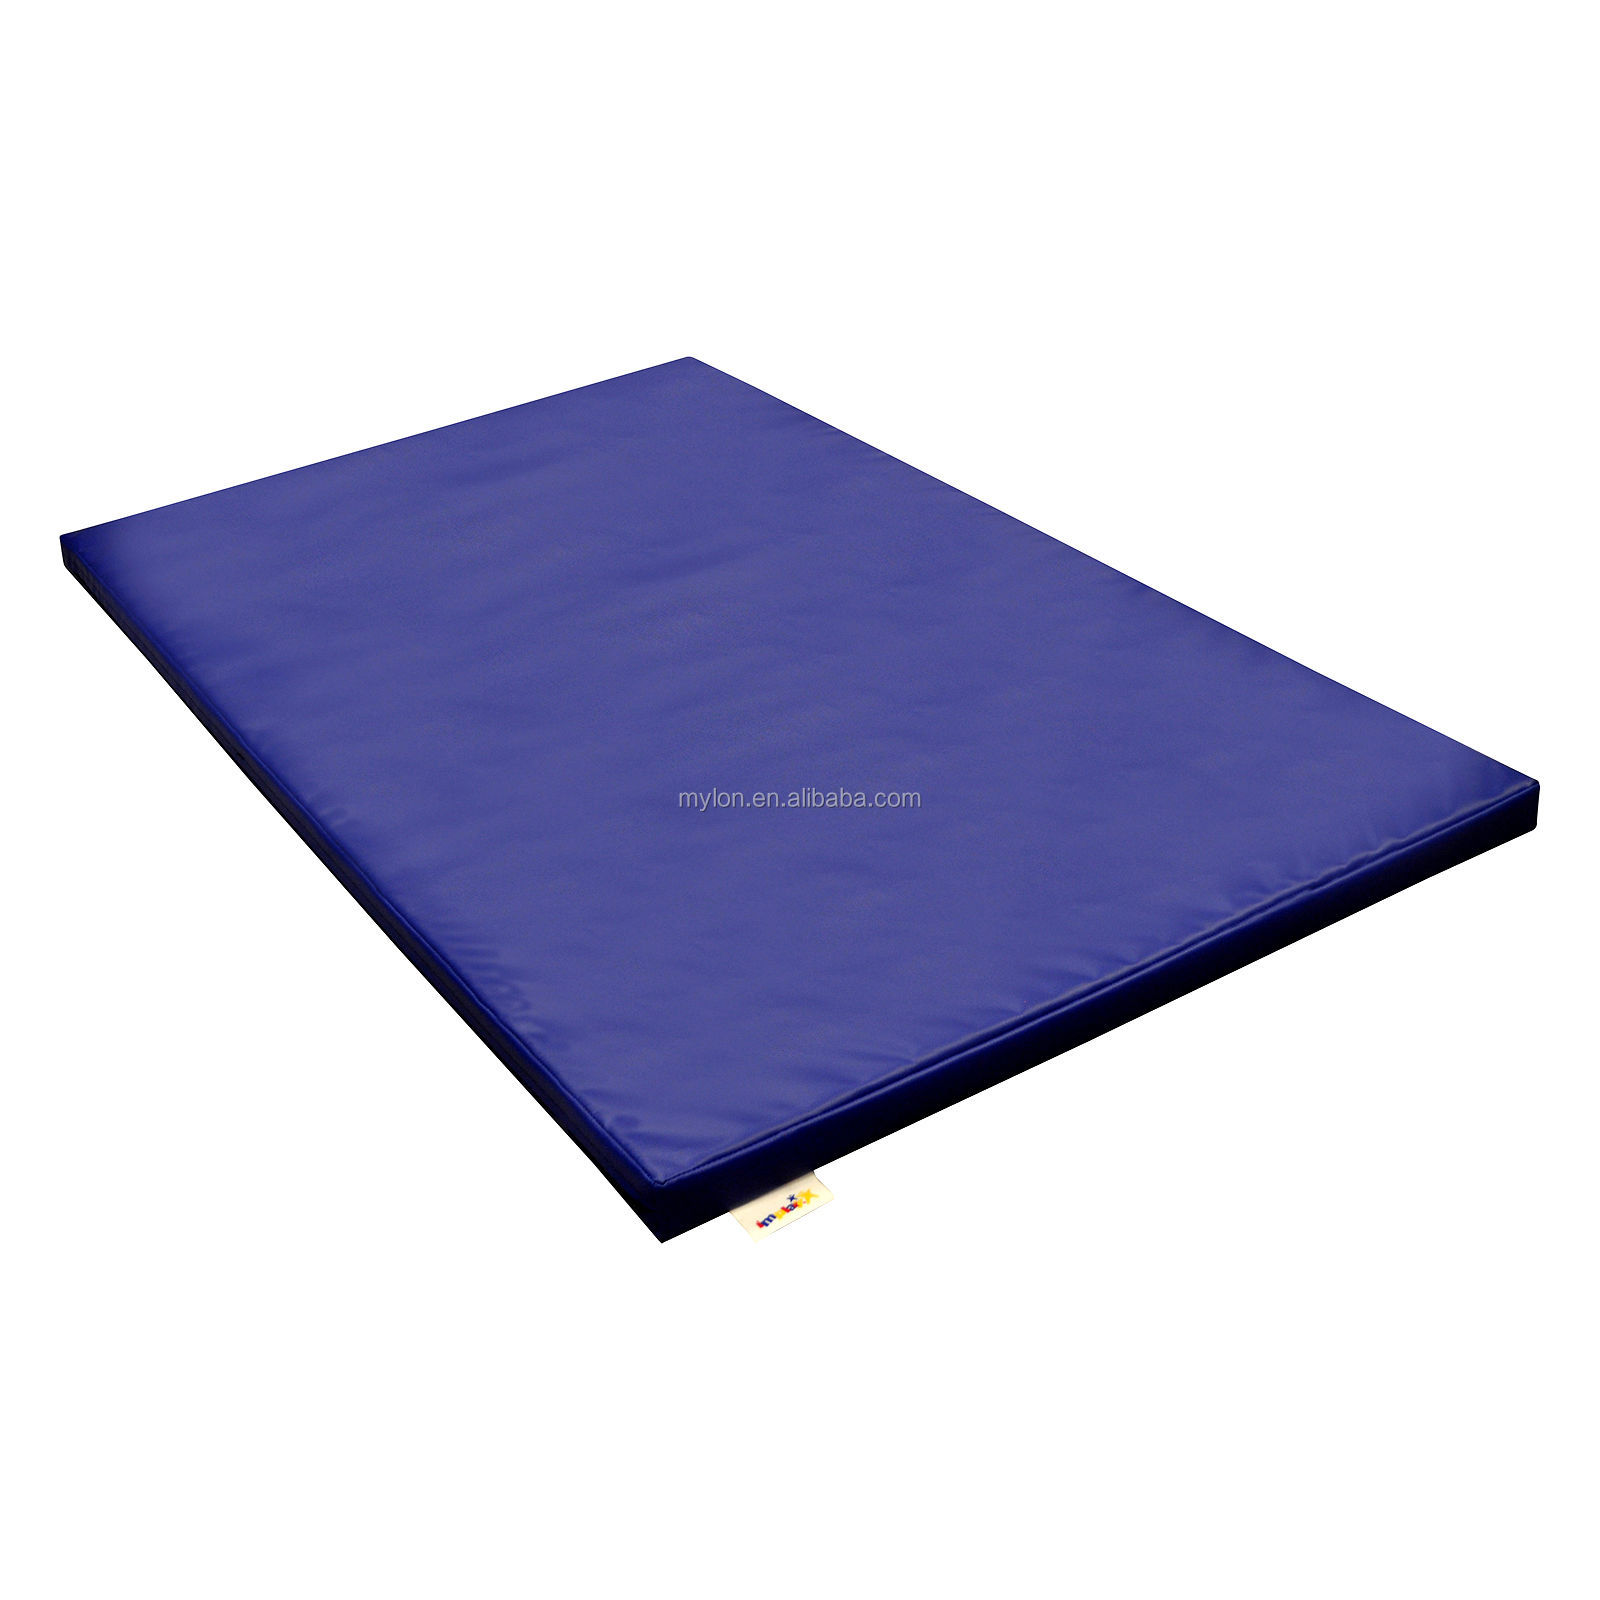 home air cheerleading detail track inflatable and big product mats size tumbling buy used gymnastics gymnastic australia mat small